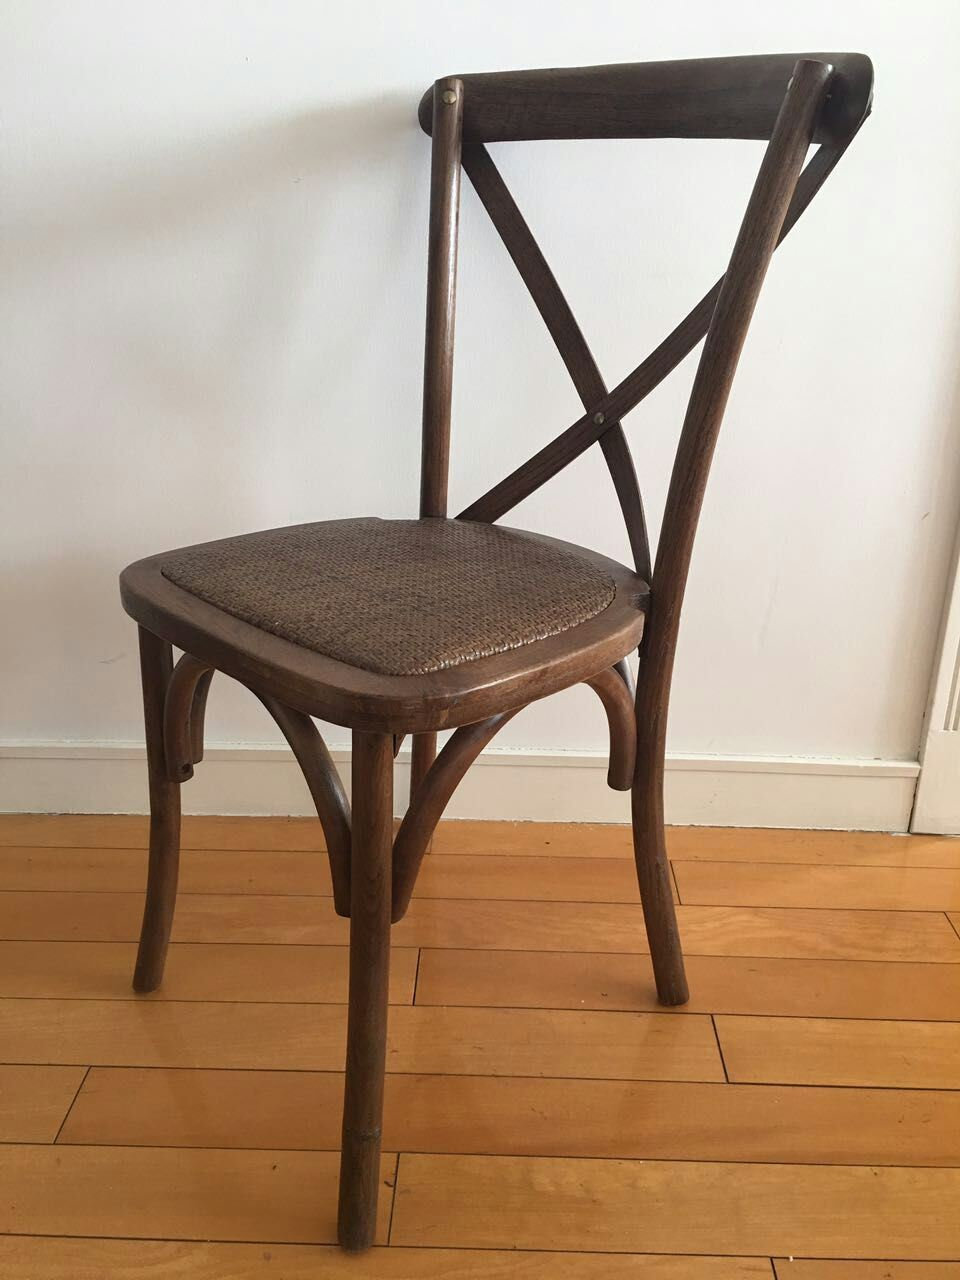 Hot Item Stackable Rustic Oak Wood Cross Back Chairs For Wedding Venues